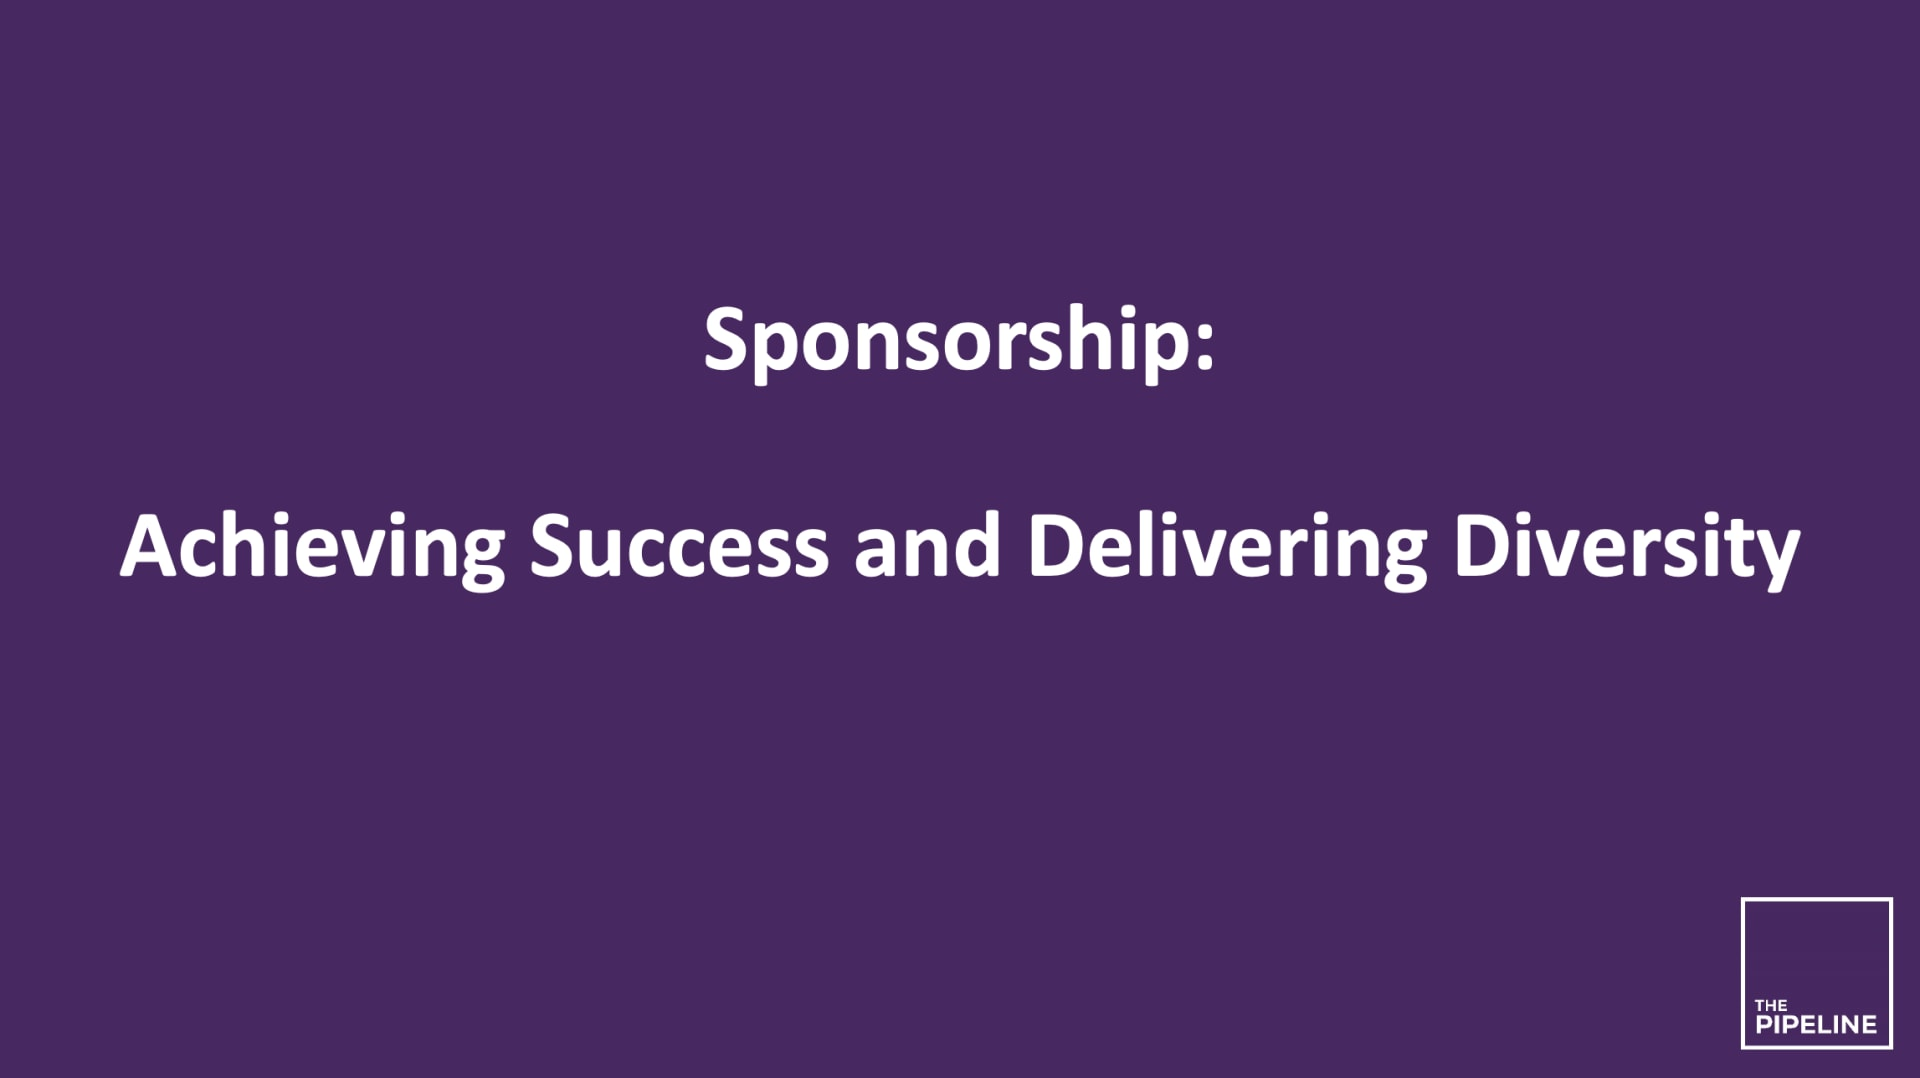 Sponsorship - Research Library